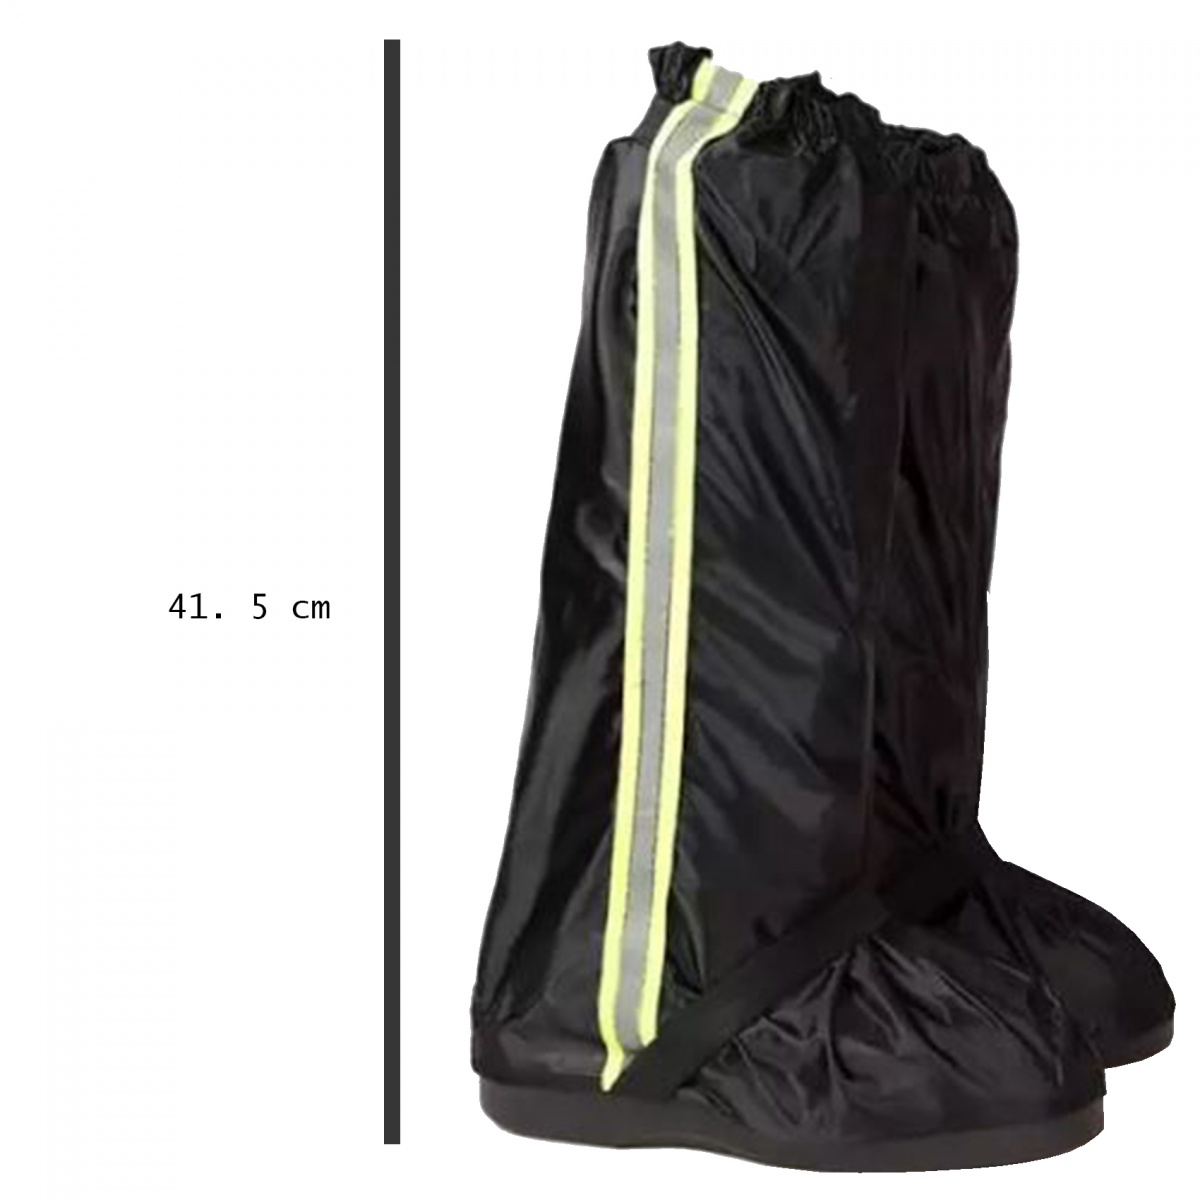 Foldable Waterproof Rain Shoes Cover With Rubber Sole XXL - Black